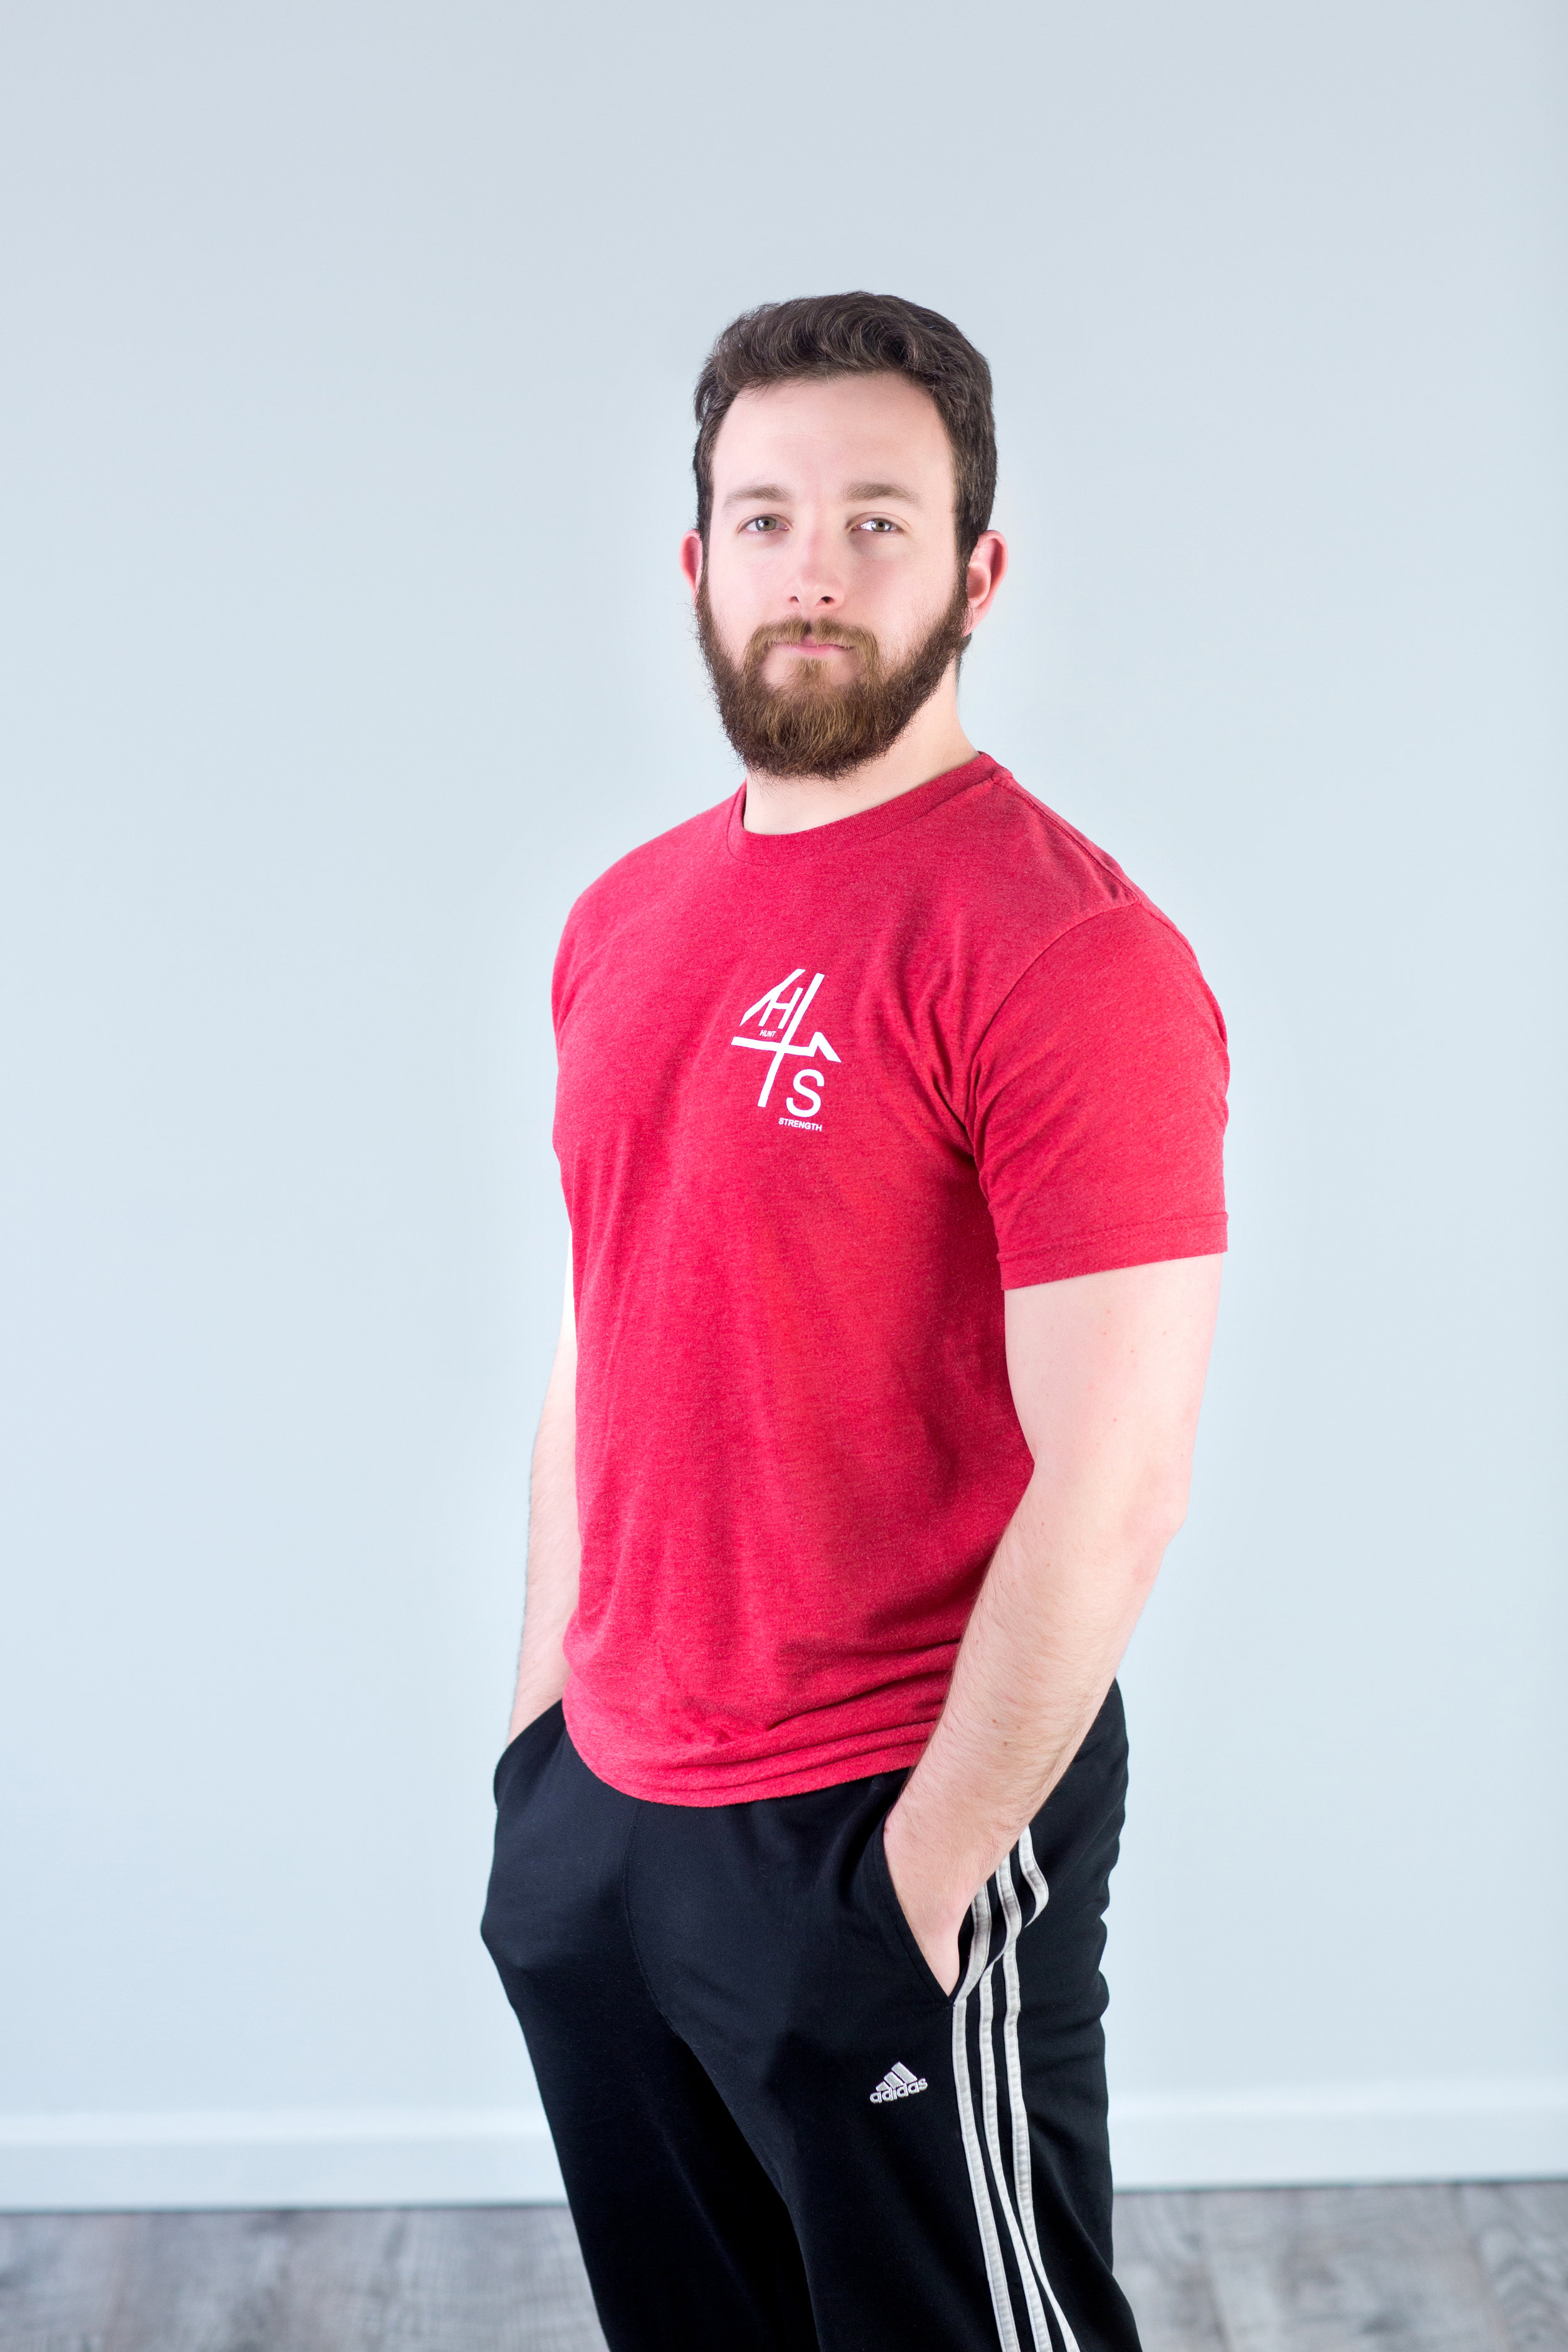 Kyle has passion for fitness which started early in high school, working out in the weight room, and escalated to learning about the human body and exercise in school and the gym.  accomplishments: -interned at Princeton university in 2014 -William Paterson university bachelors in exercise physiology with a concentration in exercise science -William Paterson university rugby club for two years -attained NSCA certified strength and conditioning specialist certification in 2017